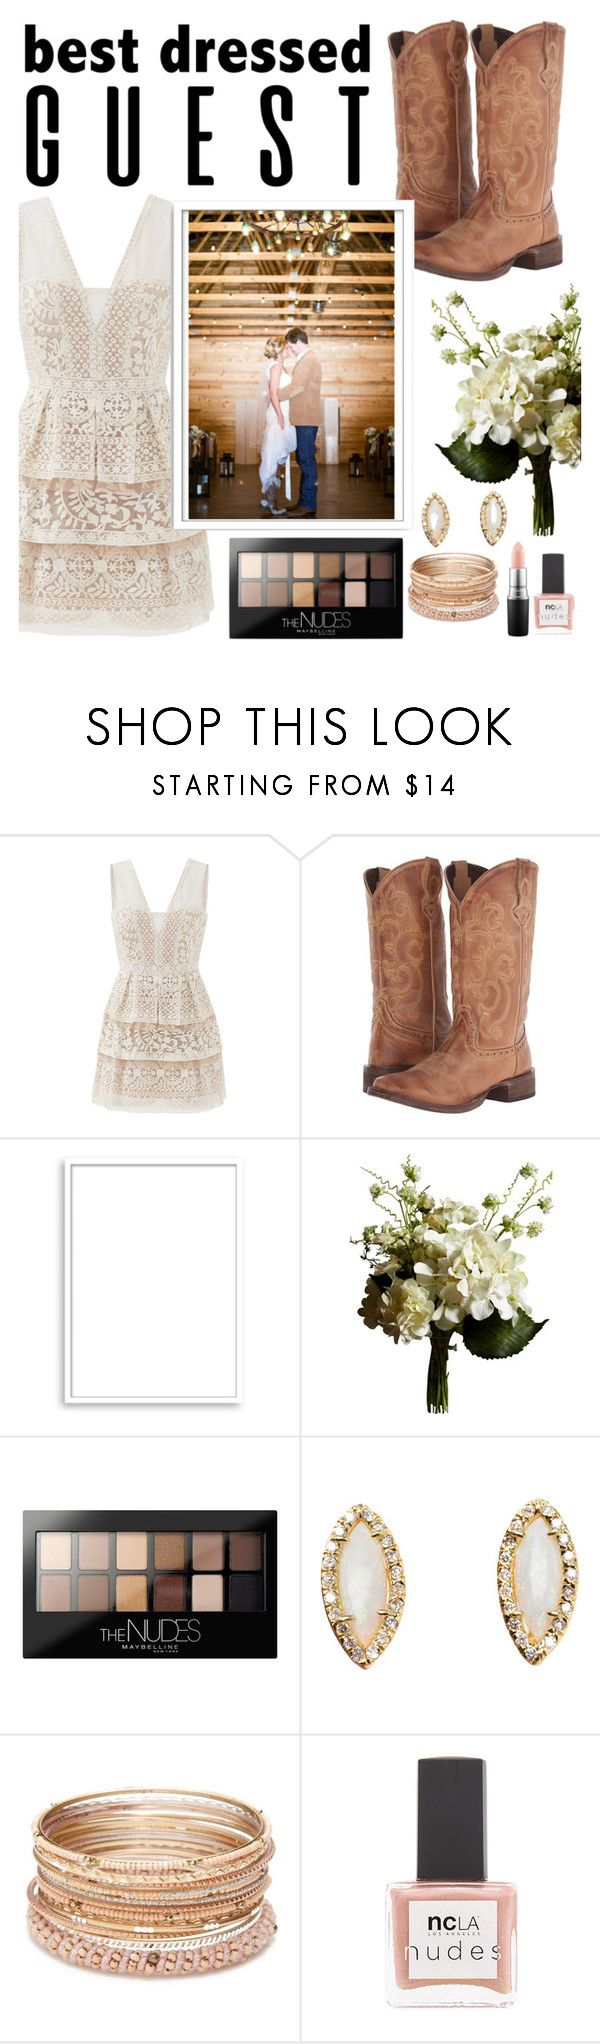 """Best dressed guest : Barn wedding"" by iconsoffashion ❤ liked on Polyvore featuring BCBGMAXAZRIA, Roper, Bomedo, Abigail Ahern, Maybelline, Kimberly McDonald, Red Camel, ncLA, MAC Cosmetics and polyvoreeditorial"